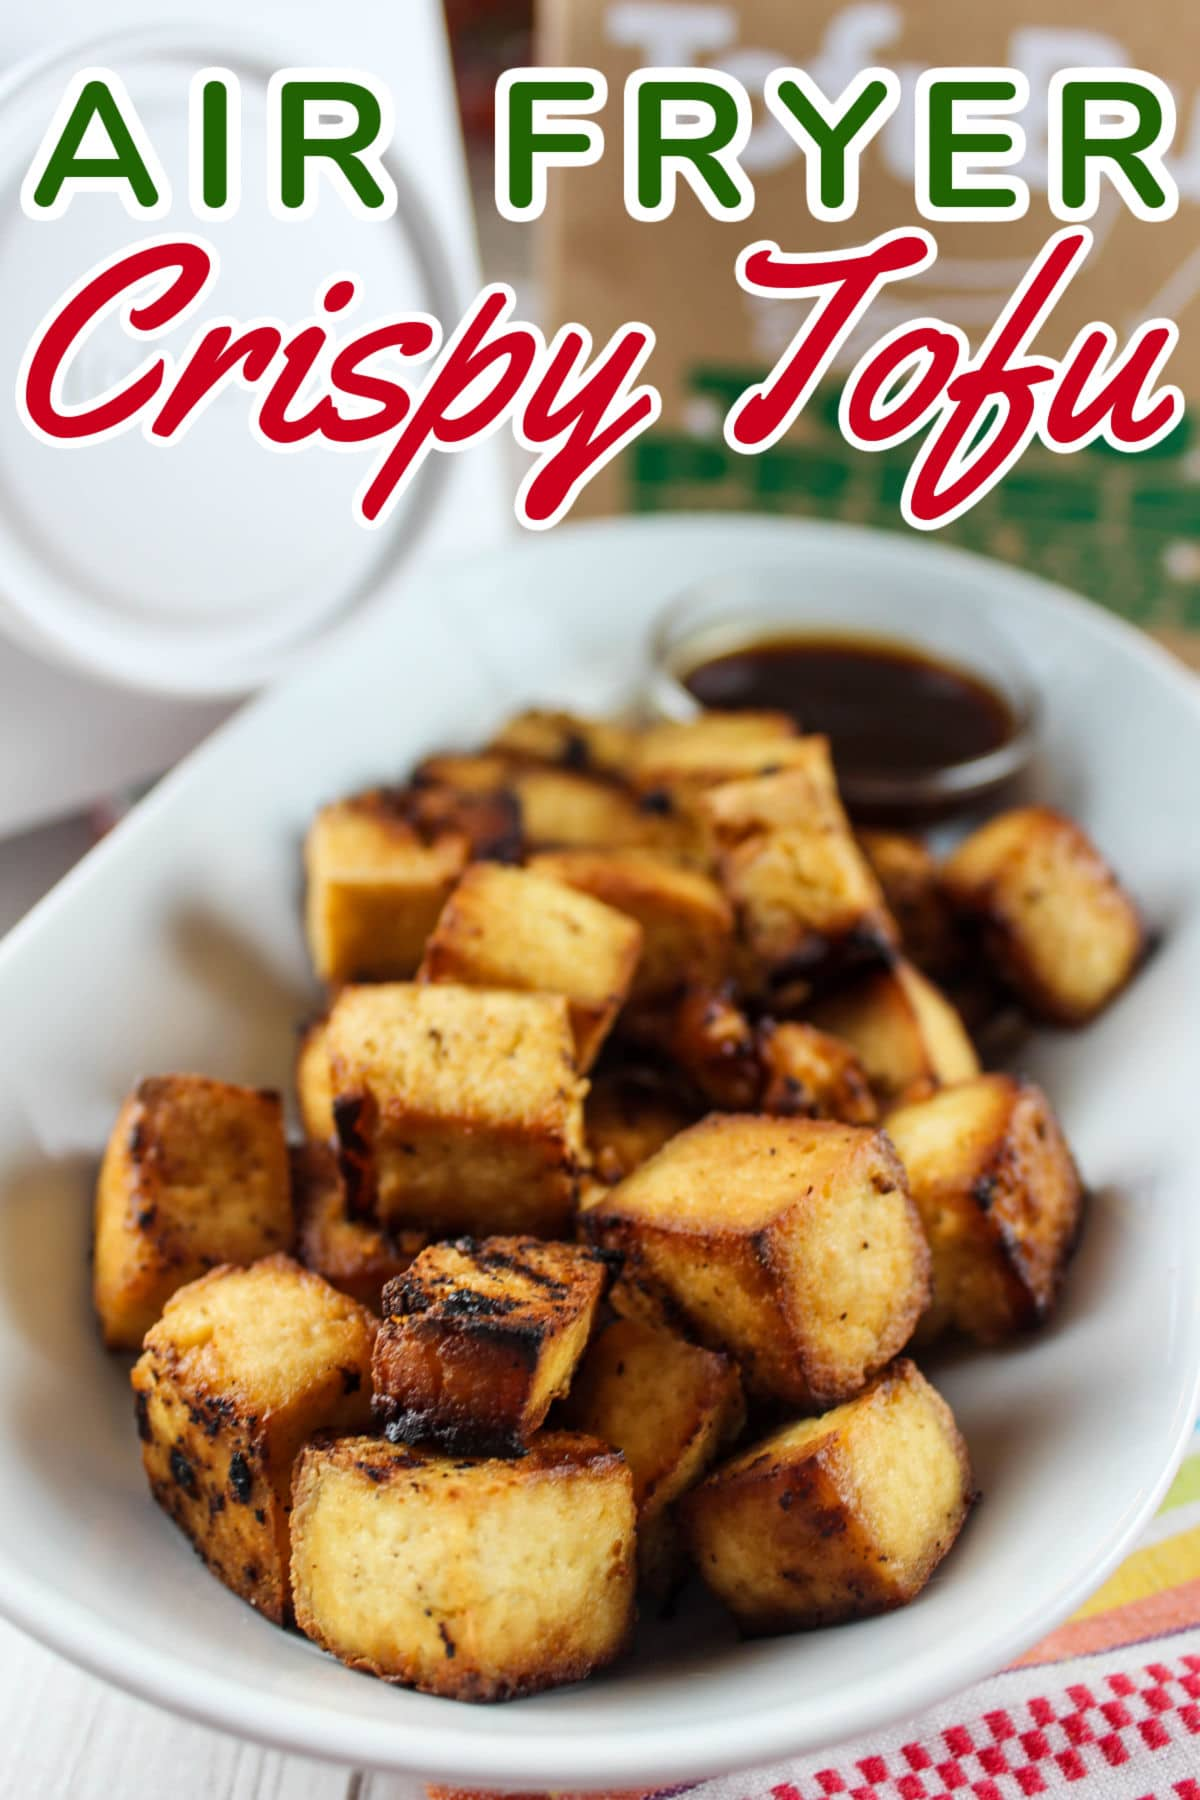 Air Fryer Tofu is really easy and can be used in place of chicken or steak in so many recipes - or just enjoyed as a healthy appetizer on its own.  via @foodhussy